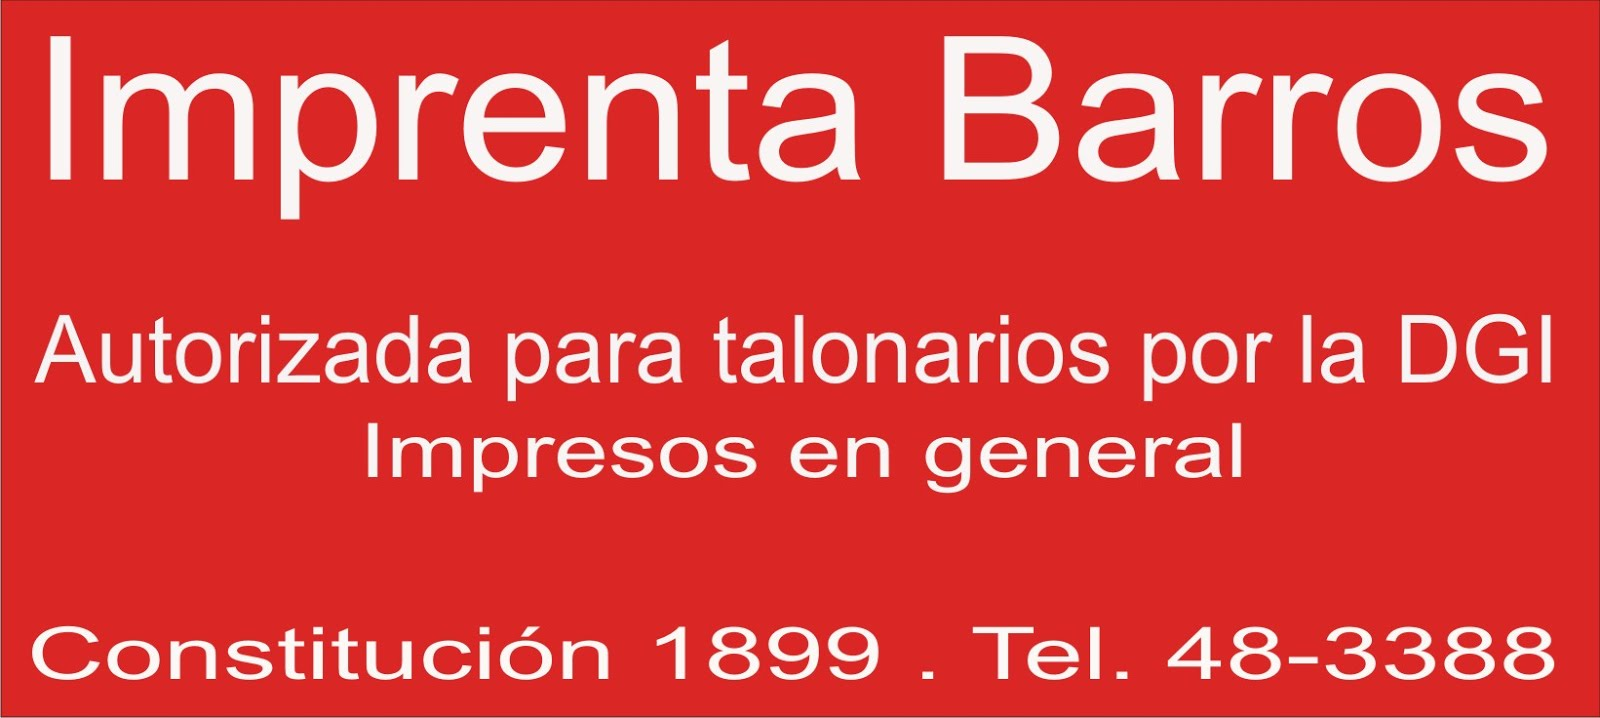 Imprenta Barros